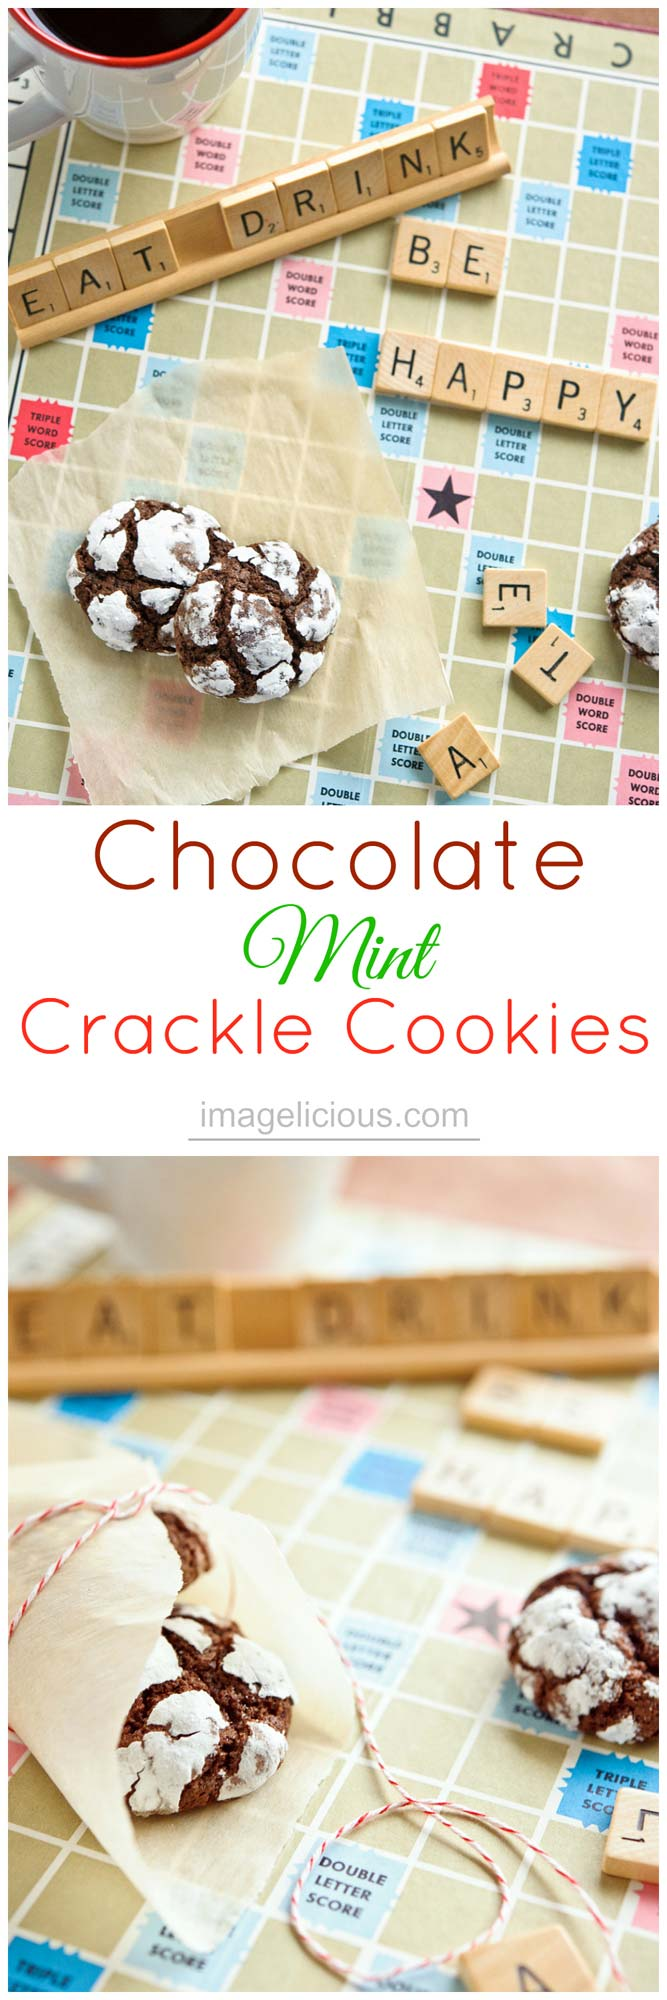 Chocolate-Mint Crackle Cookies - perfect little mint cookies to make during winter holidays | Imagelicious | #mint #holidaycookies #holidaybaking #holidayrecipe #baking #holidays #cookies #chocolate